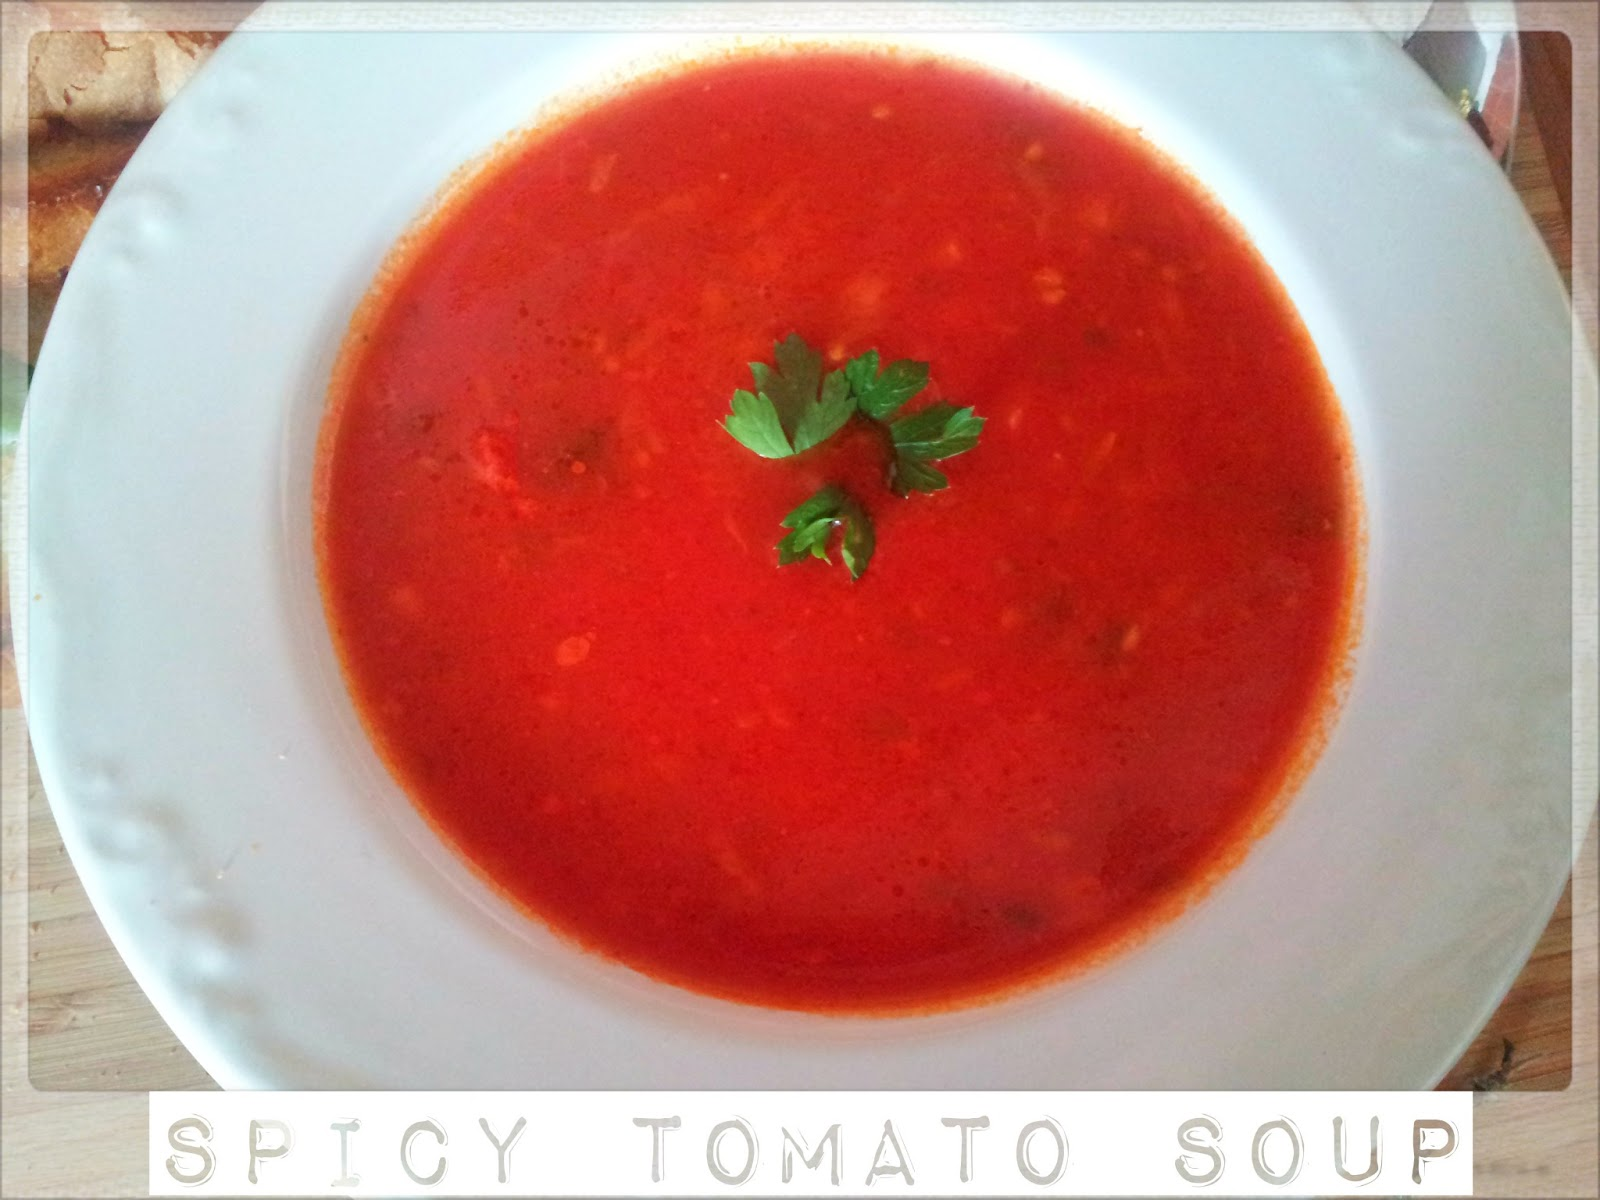 You've Got Meal!: Spicy Tomato Soup Recipe